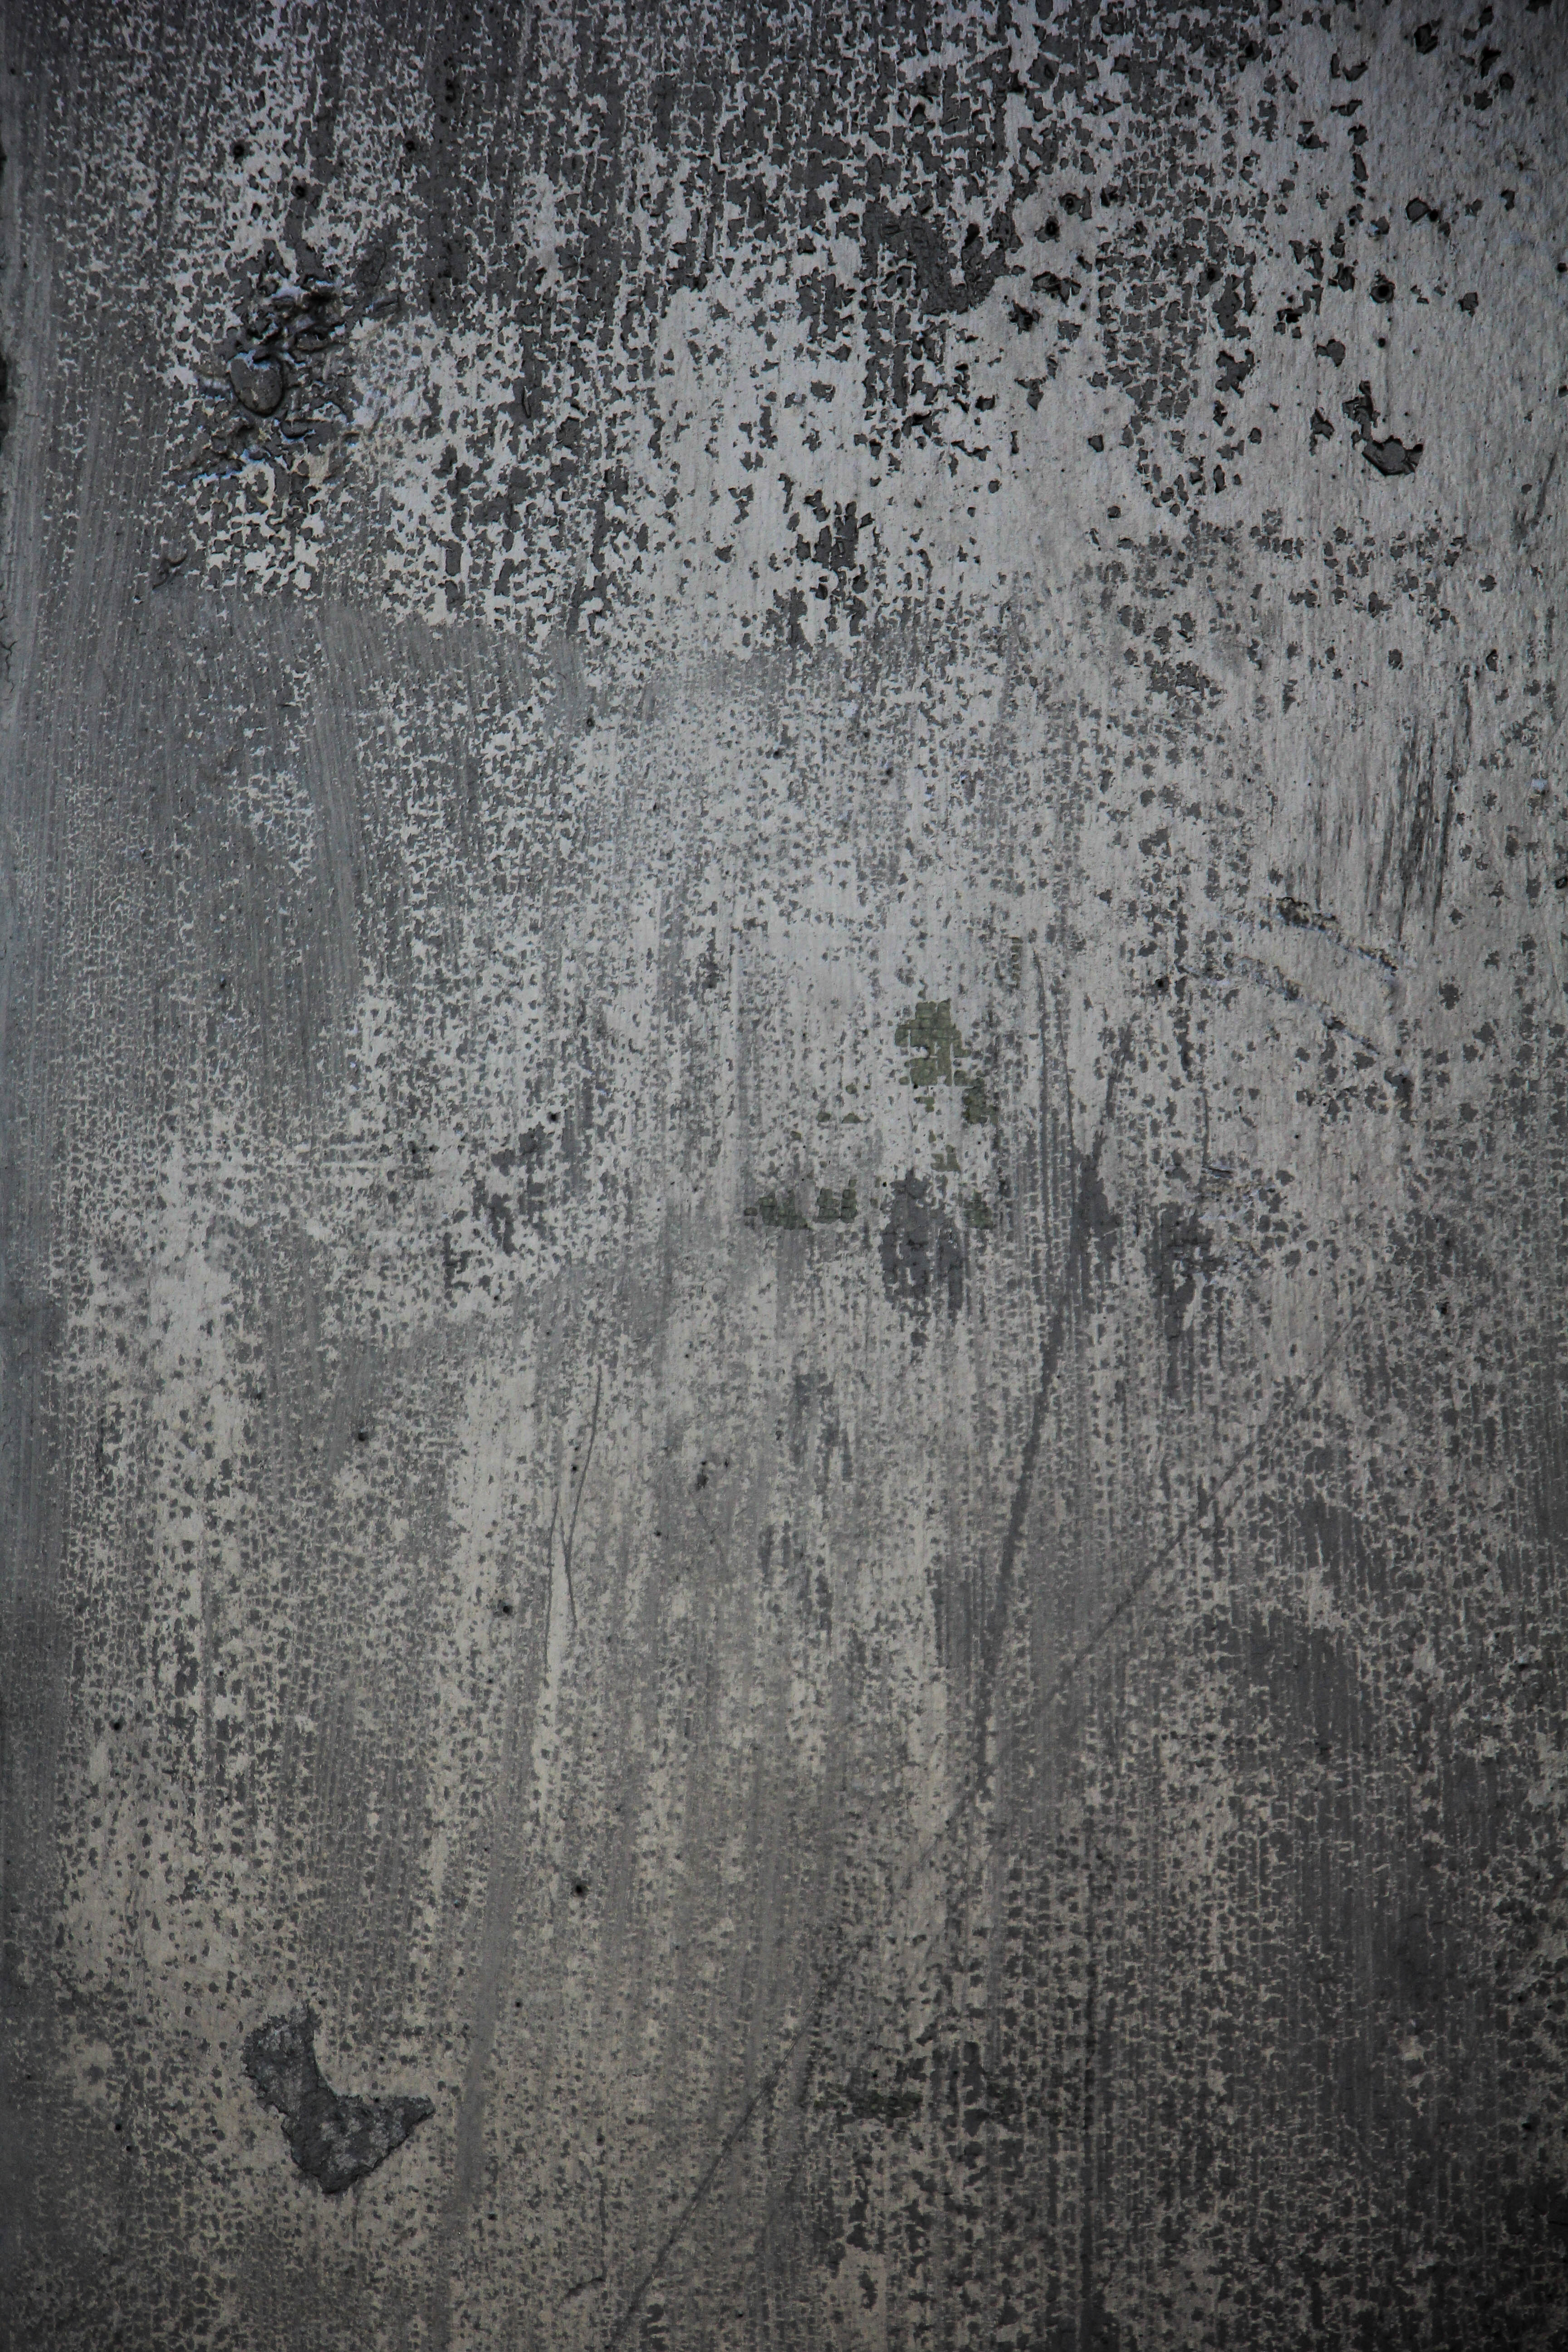 grunge texture paint chipped wall grey stock photo dirty old aged